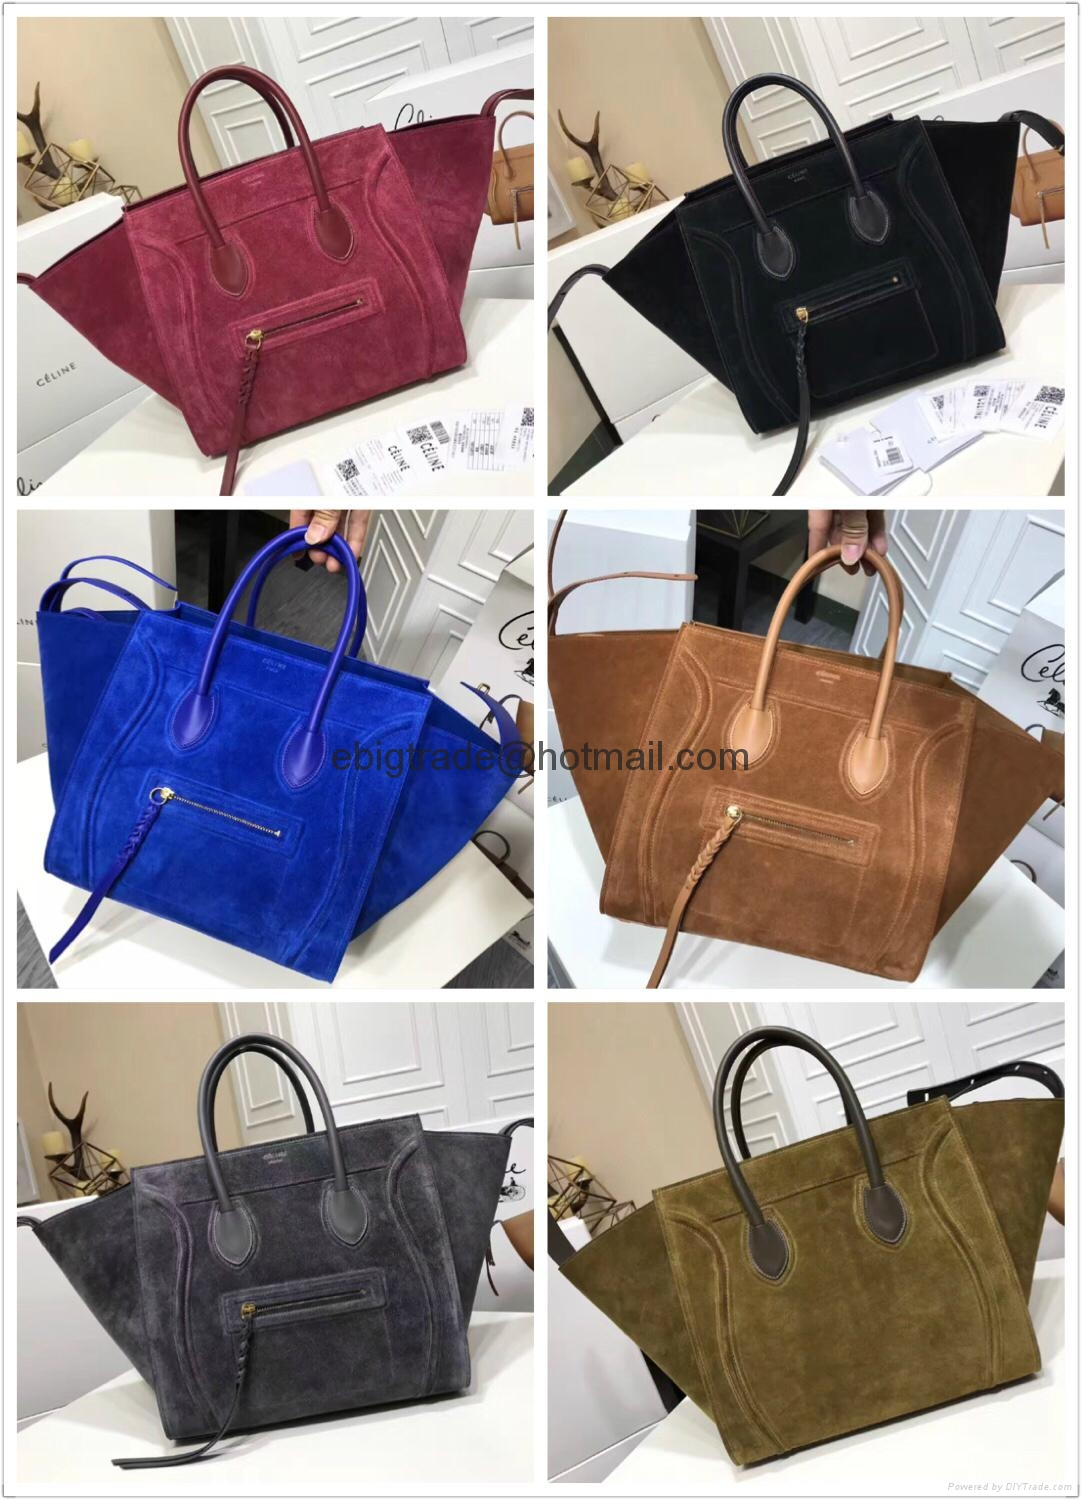 Celine handbags replica